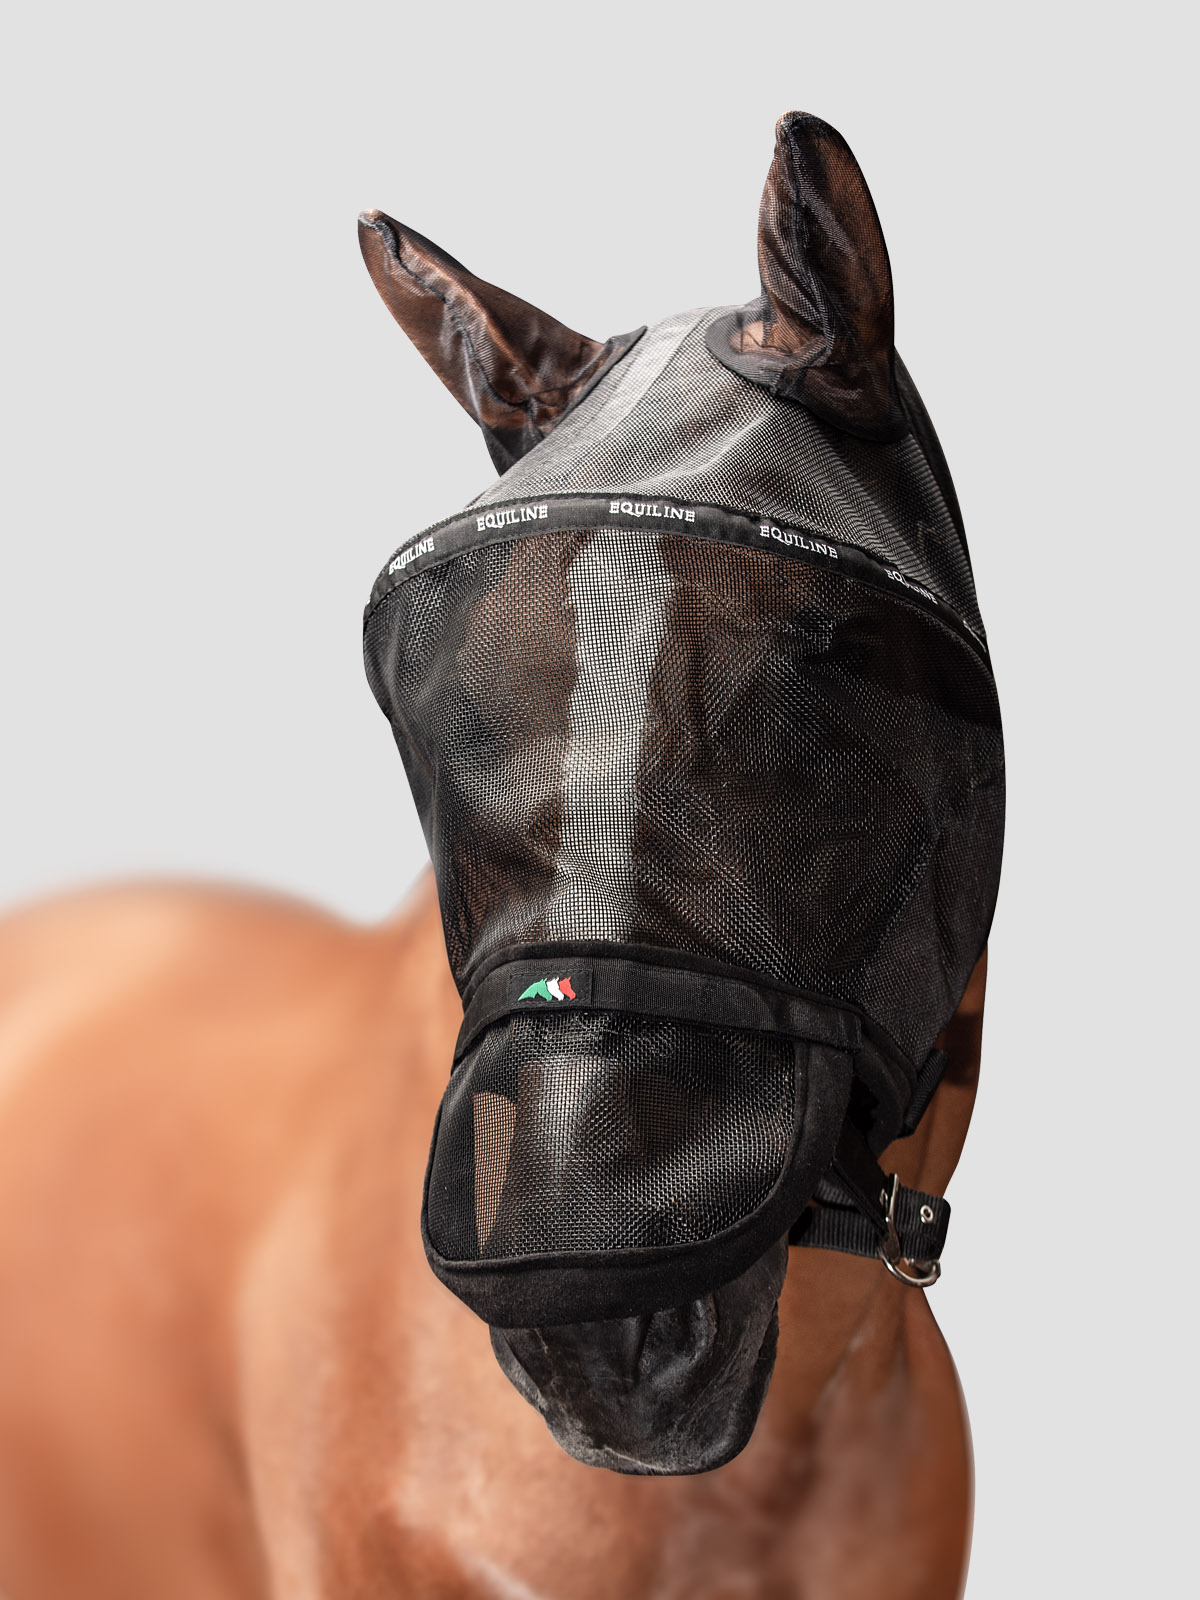 BENSON - Full Face Fly Mask (with ears and detachable Nose) 1